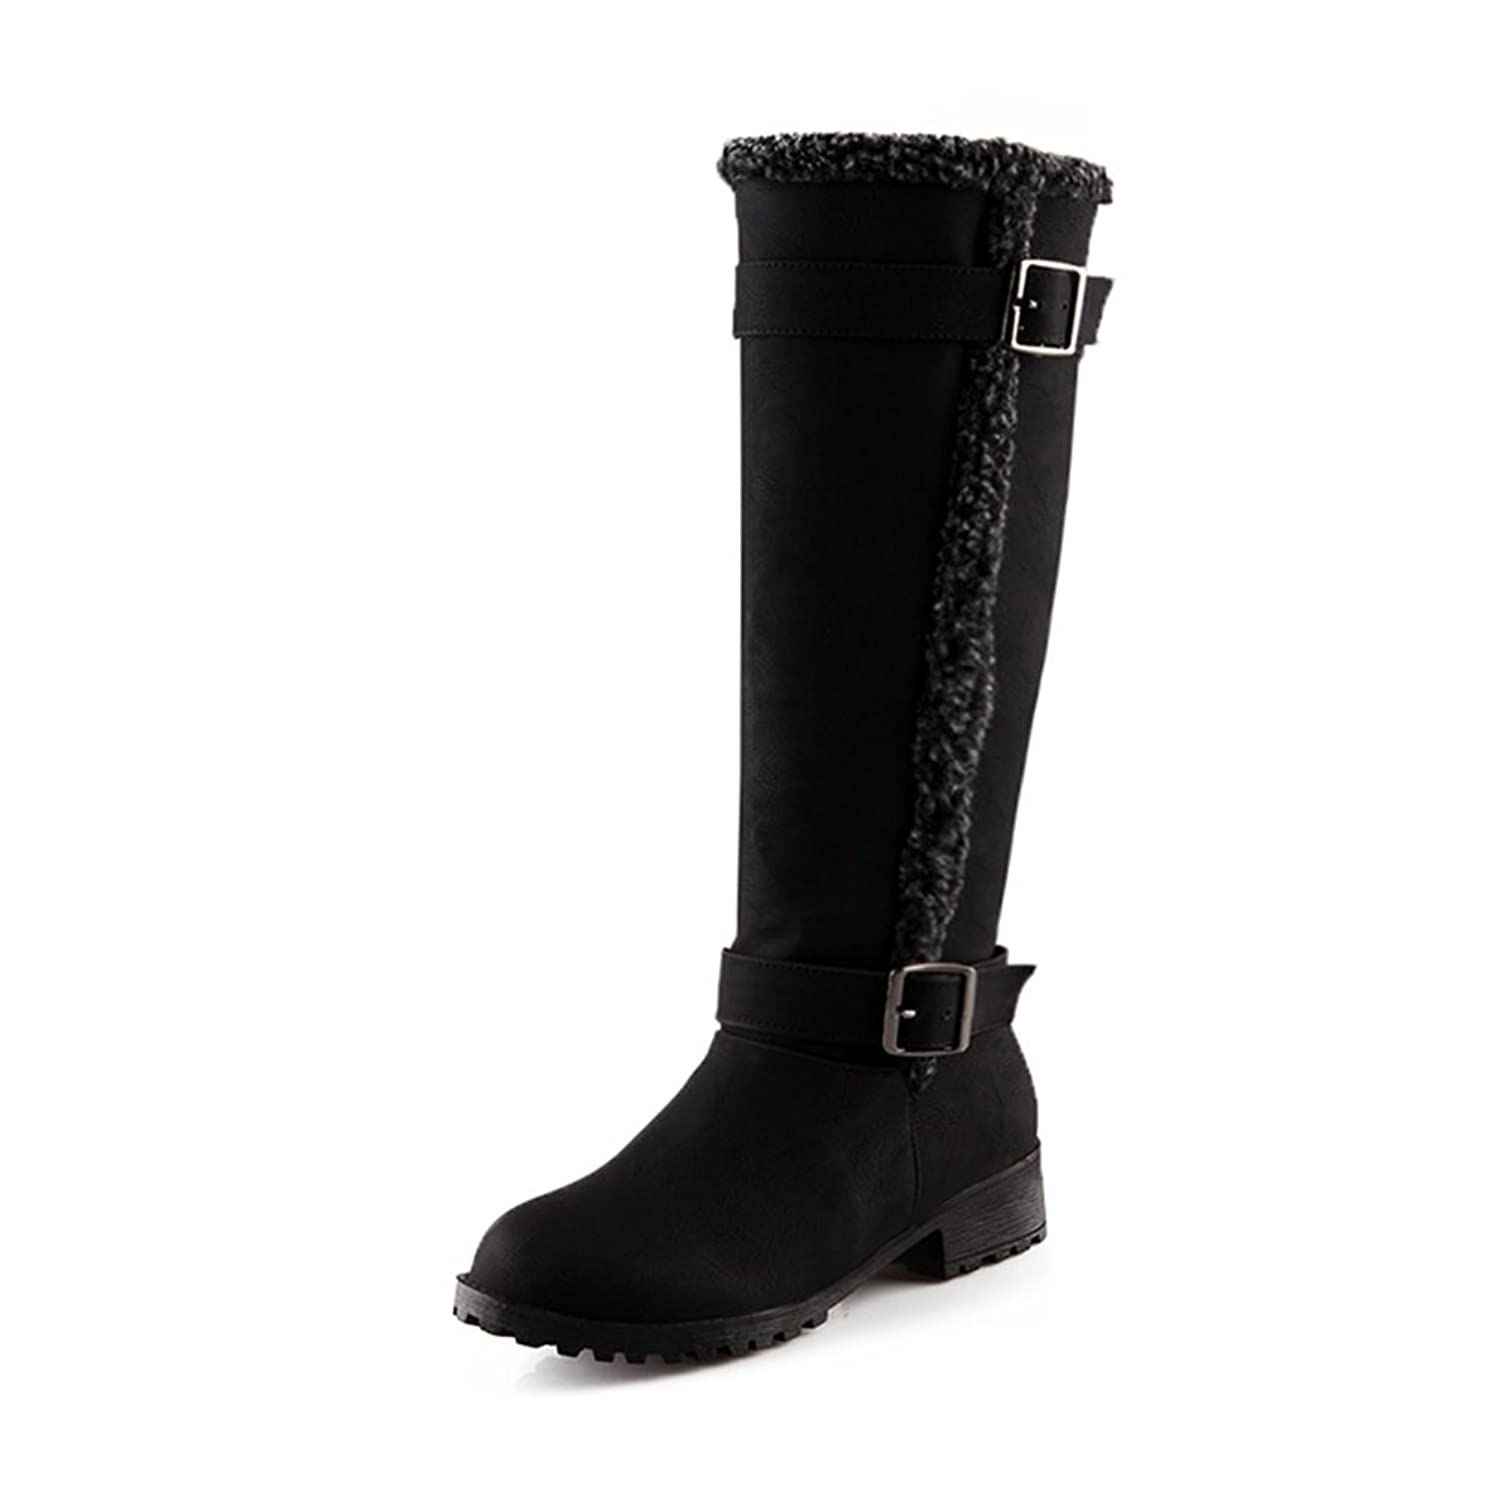 Agowoo Womens Vintage Fur Knee High Thick Sole Suede Warm Boots